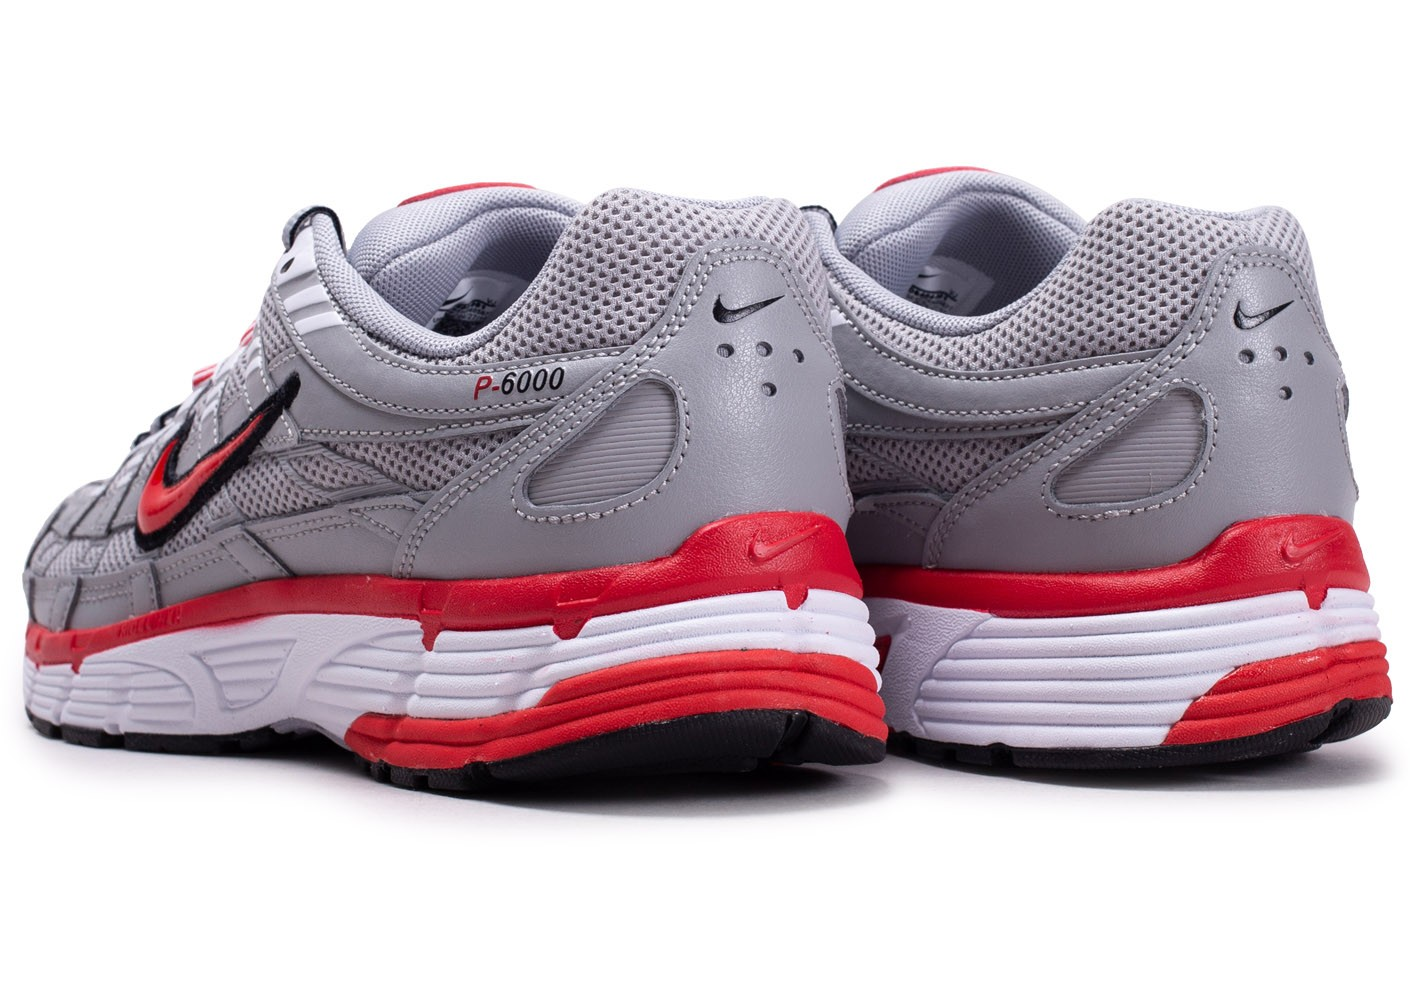 Nike P 6000 grise et rouge Chaussures Baskets homme